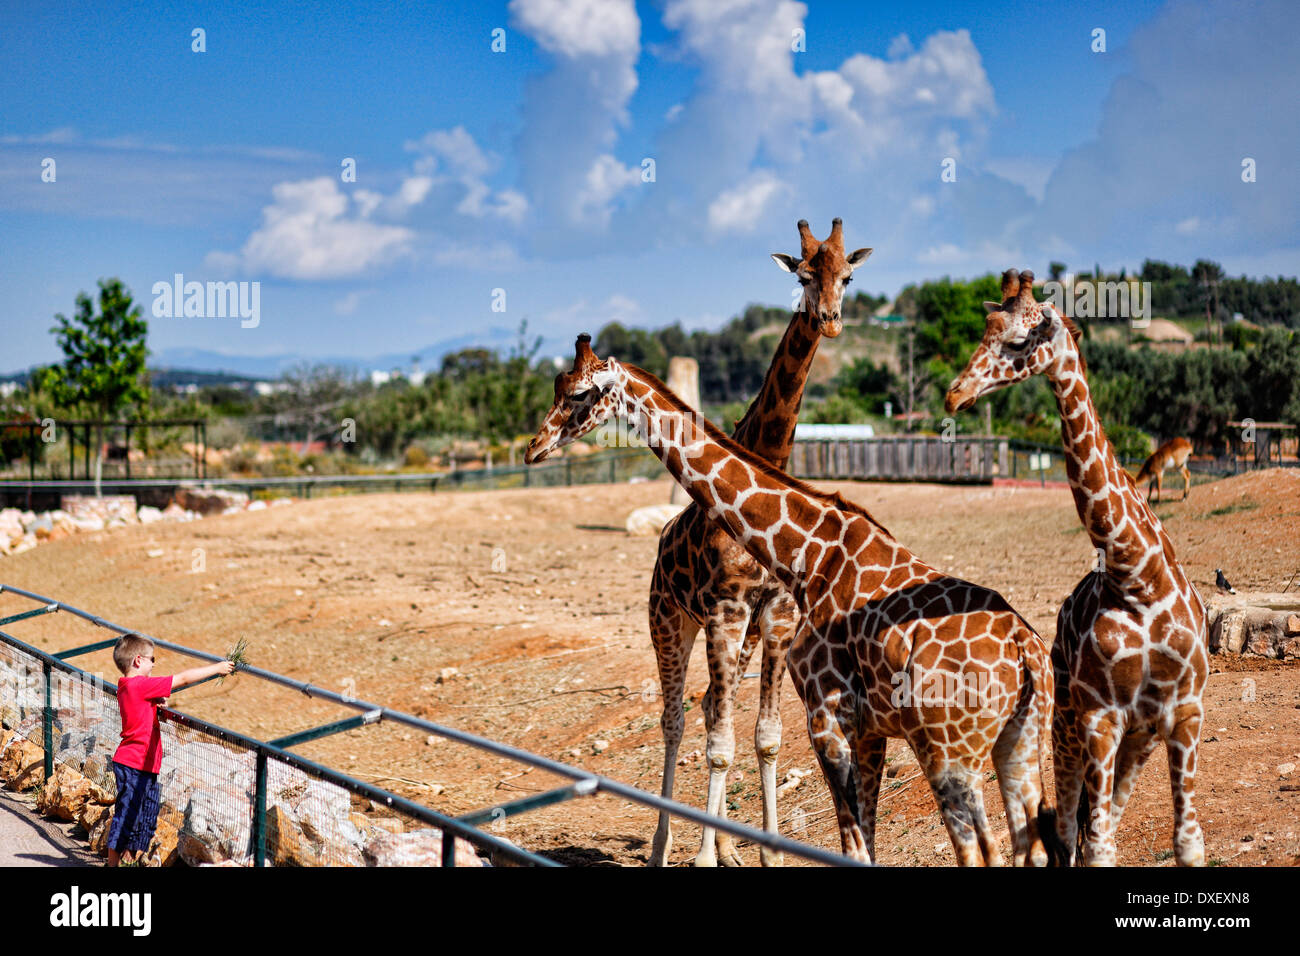 A boy feeding Giraffes at the Zoo - Stock Image